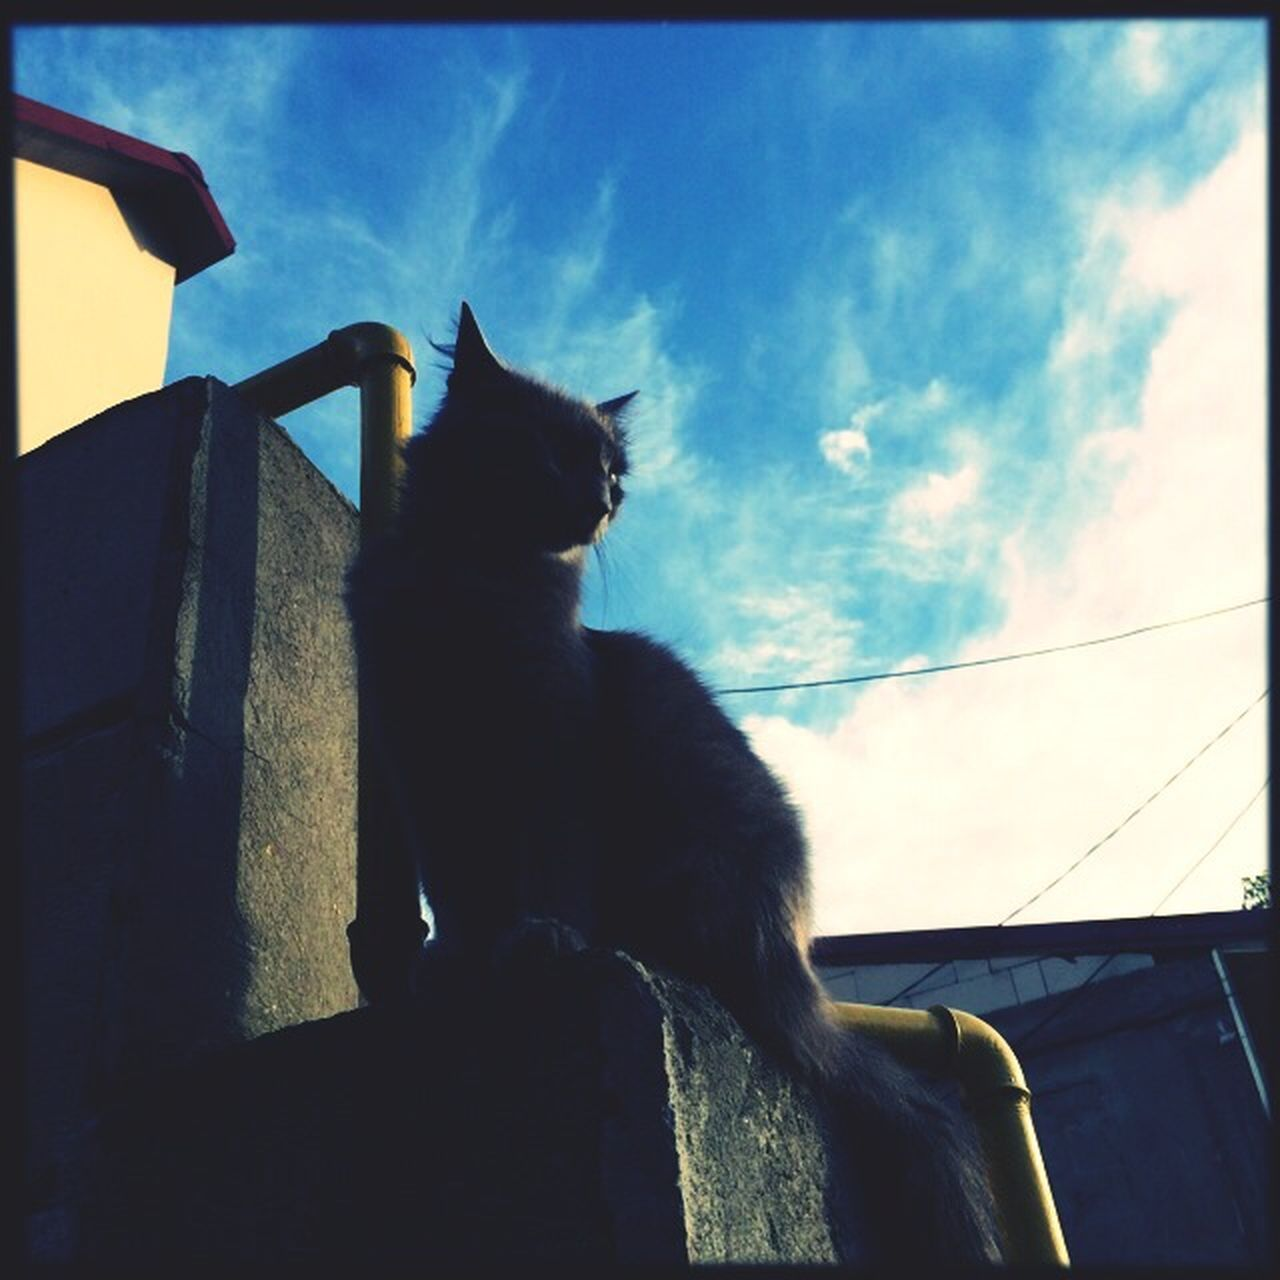 domestic cat, pets, one animal, animal themes, domestic animals, sky, feline, cat, mammal, sitting, low angle view, no people, day, outdoors, nature